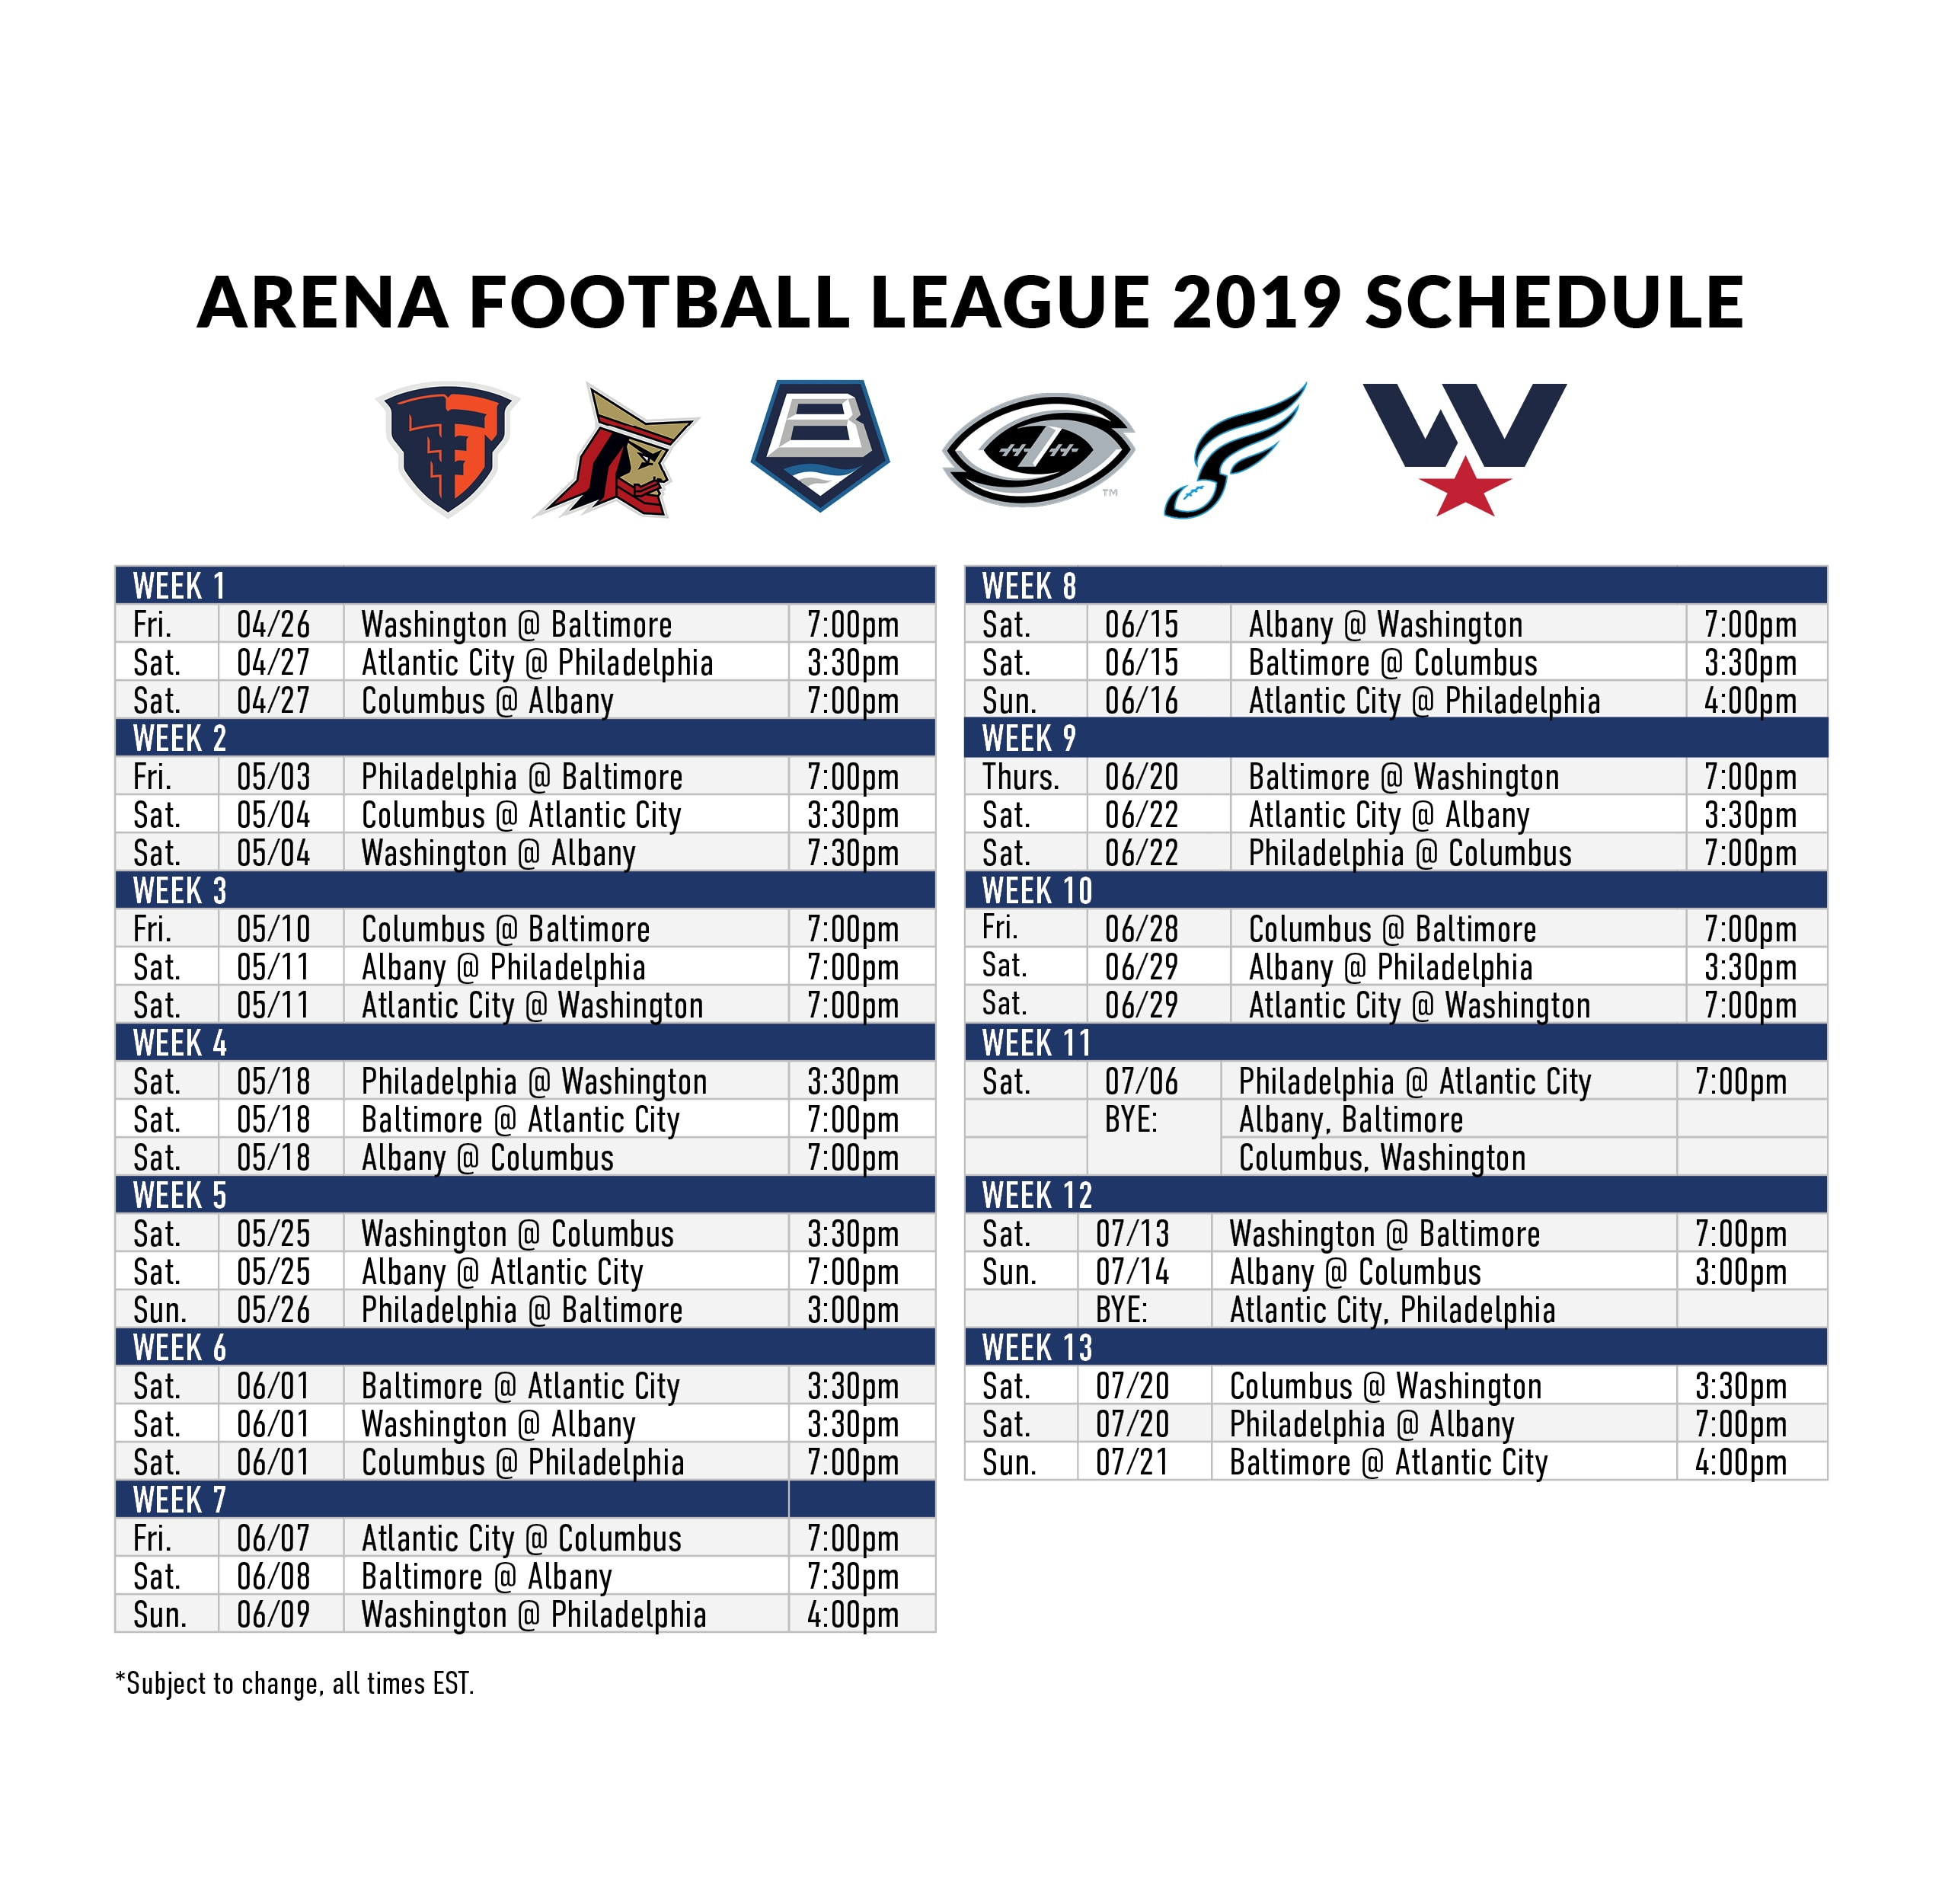 Arena Football Schedule 2019 2019 Schedule & Times   Arena Football League